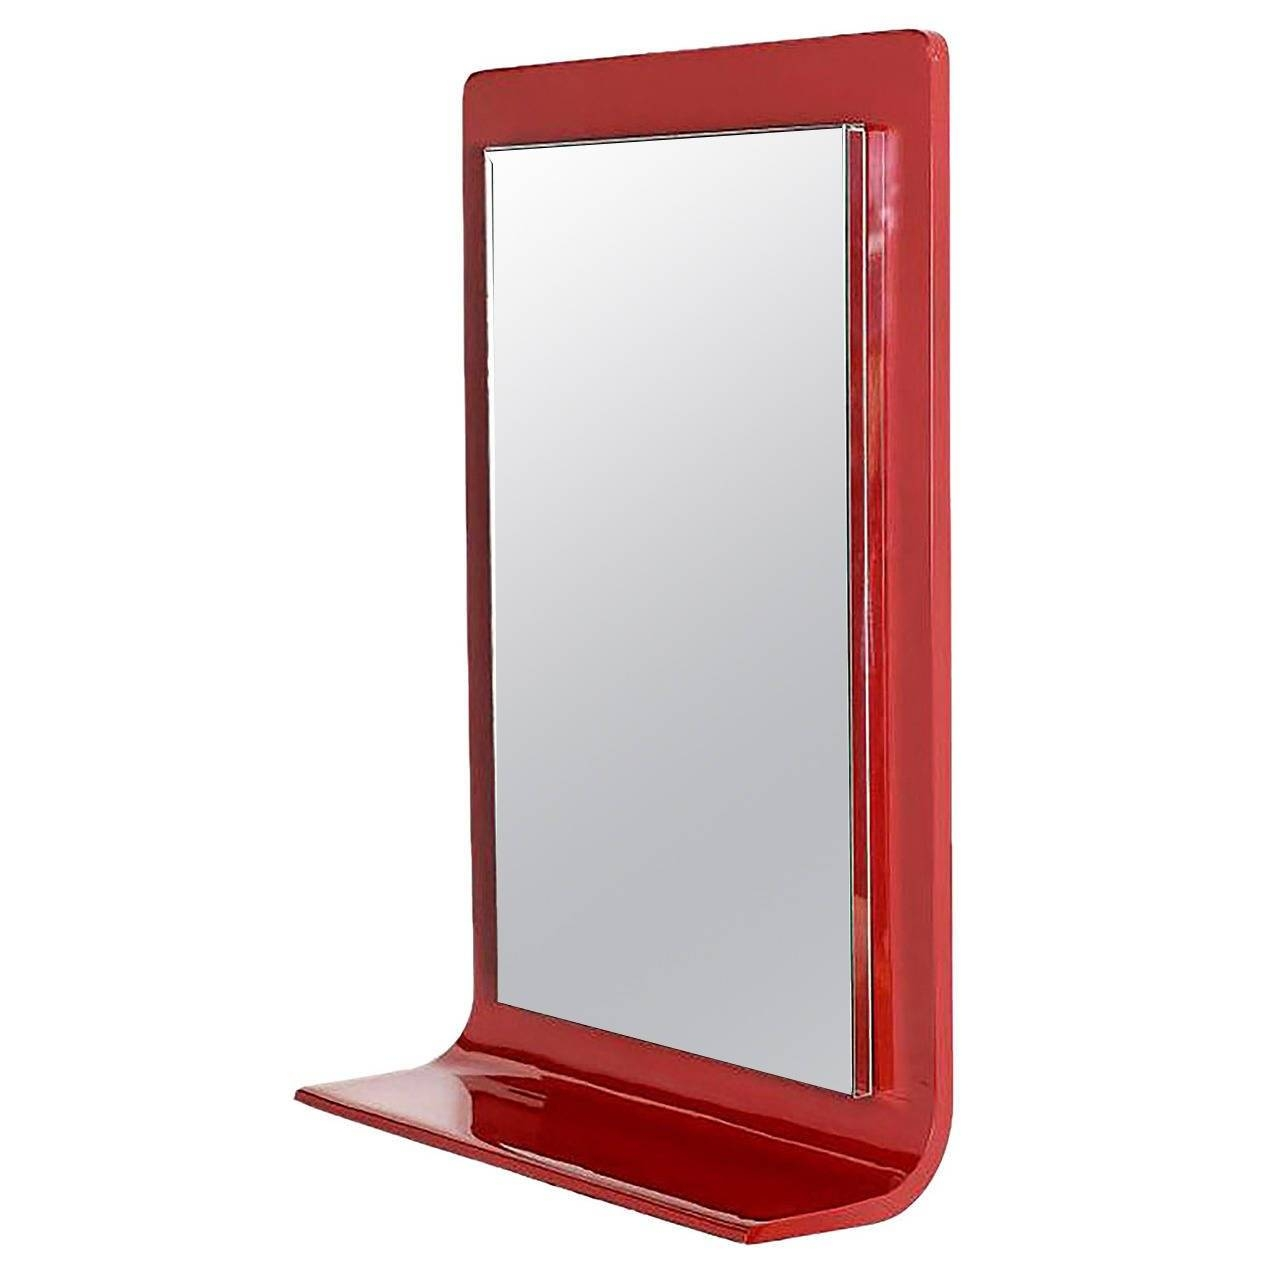 Gampel Stoll Red Lacquered Wall Mirror With Integral Console For Pertaining To Red Wall Mirrors (View 3 of 15)